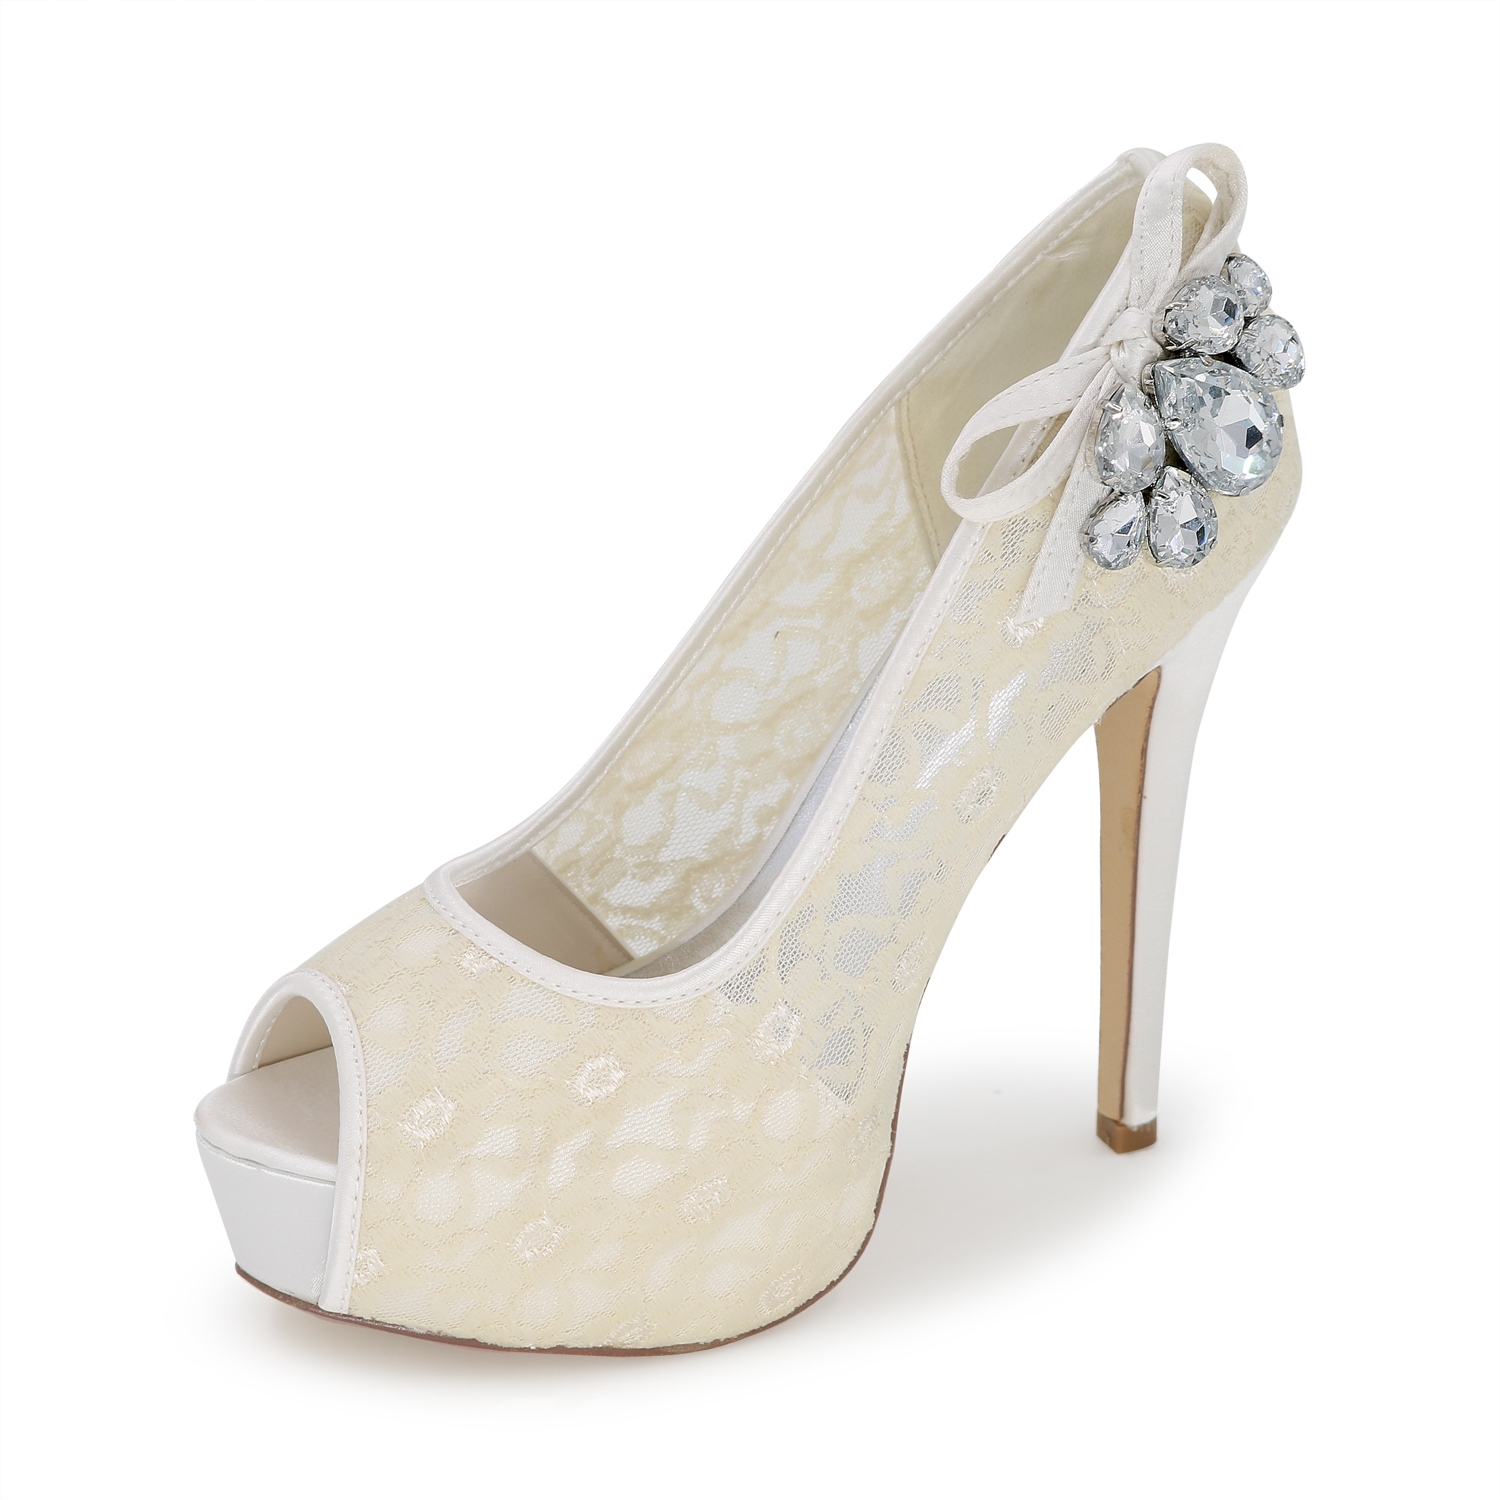 Ericdress Lace Bowtie&Crystal Peep Toe Wedding Shoes